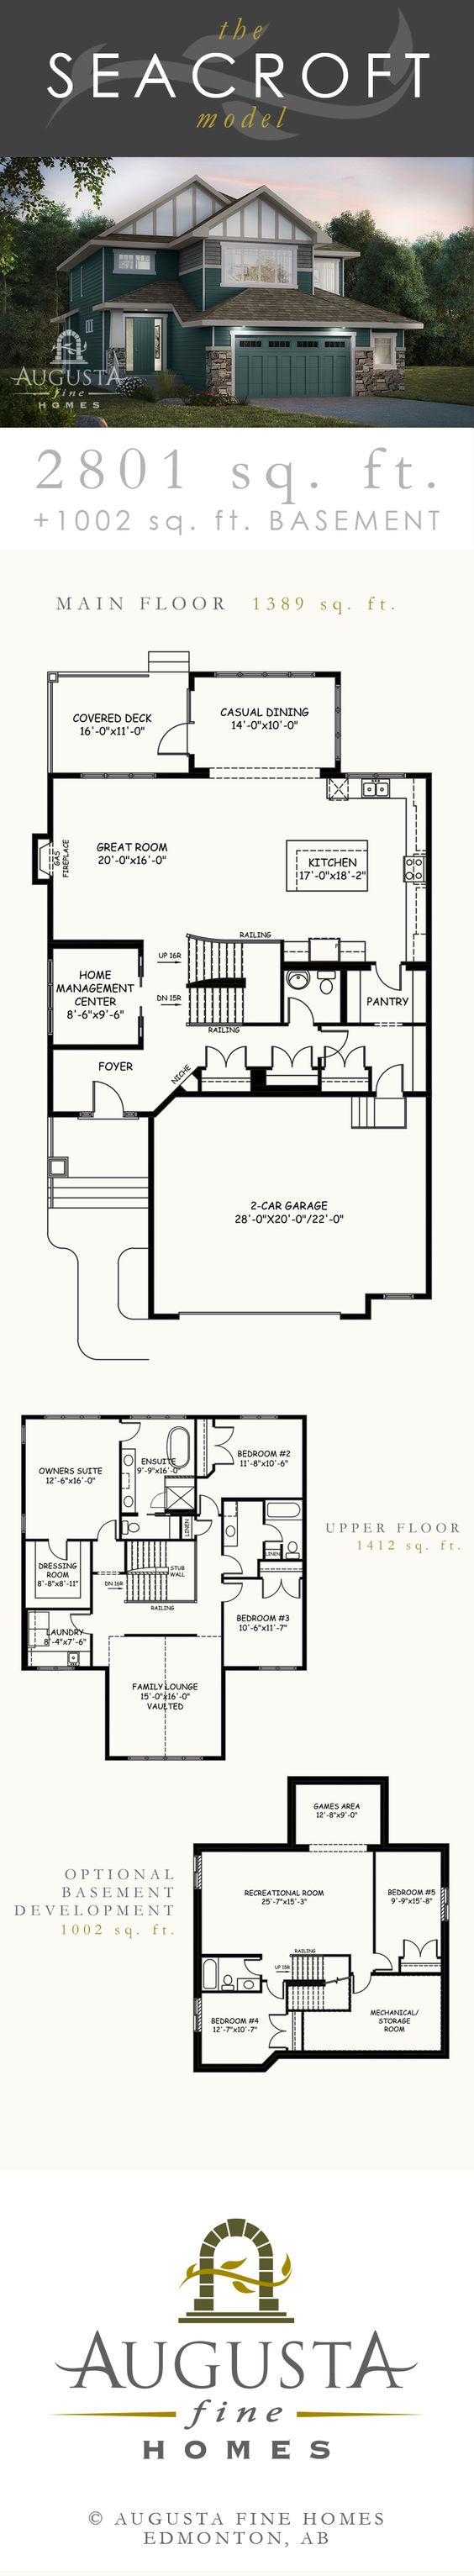 The seacroft new home model by augusta fine homes in Custom estate home plans